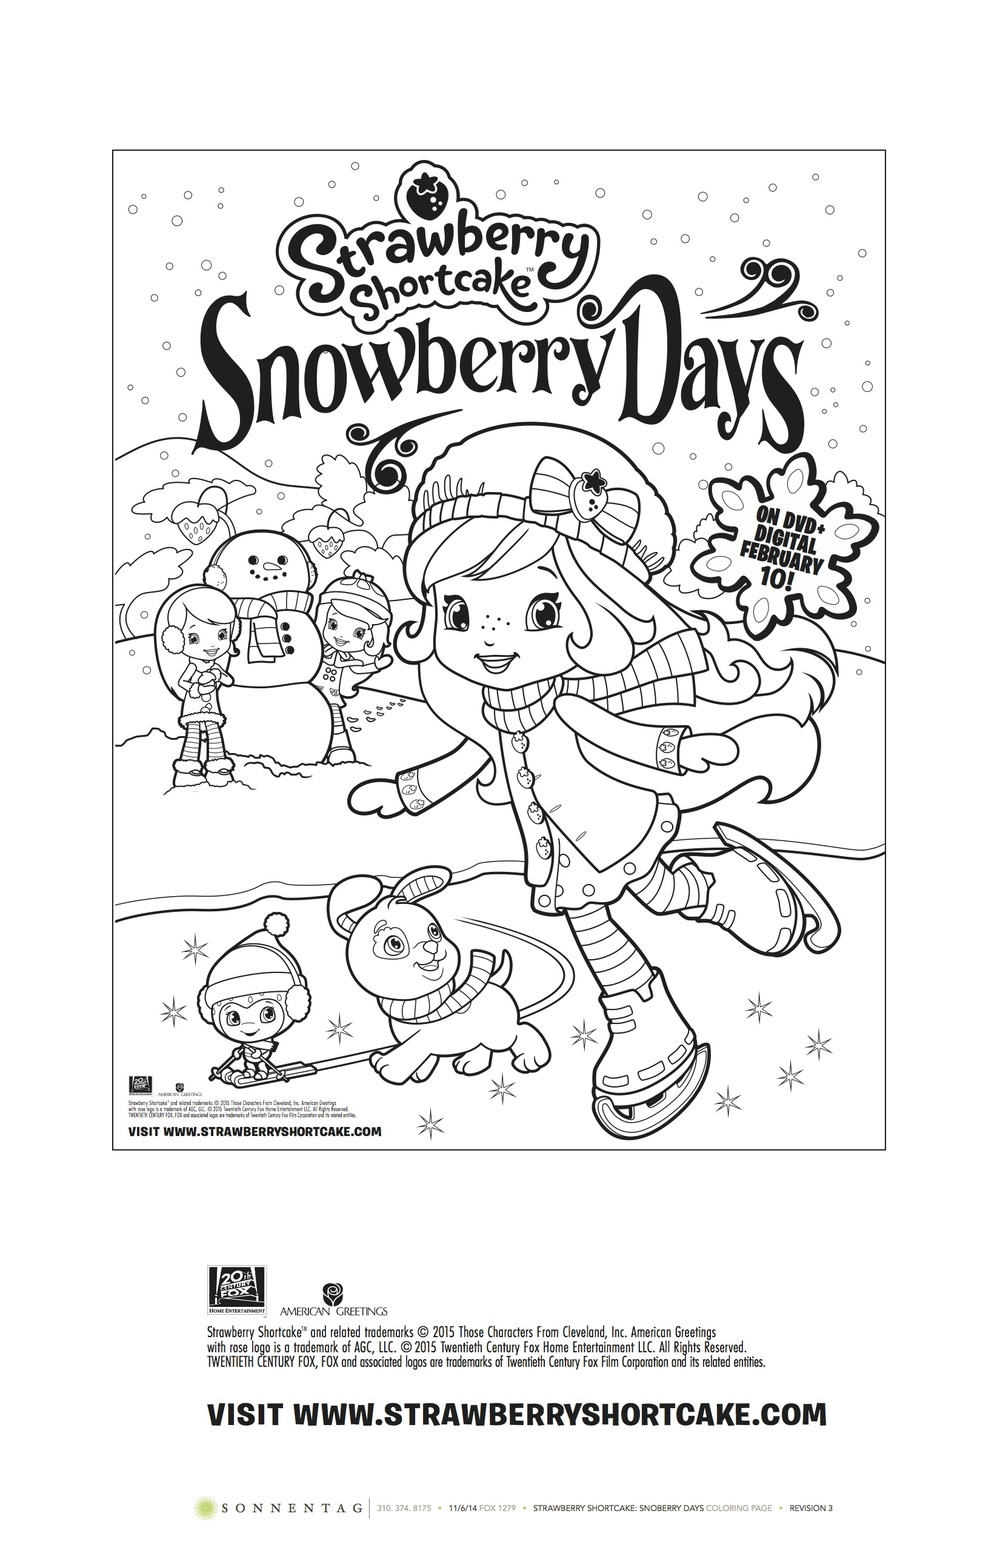 Strawberry Shortcake: Snowberry Days DVD #SnowberryDays